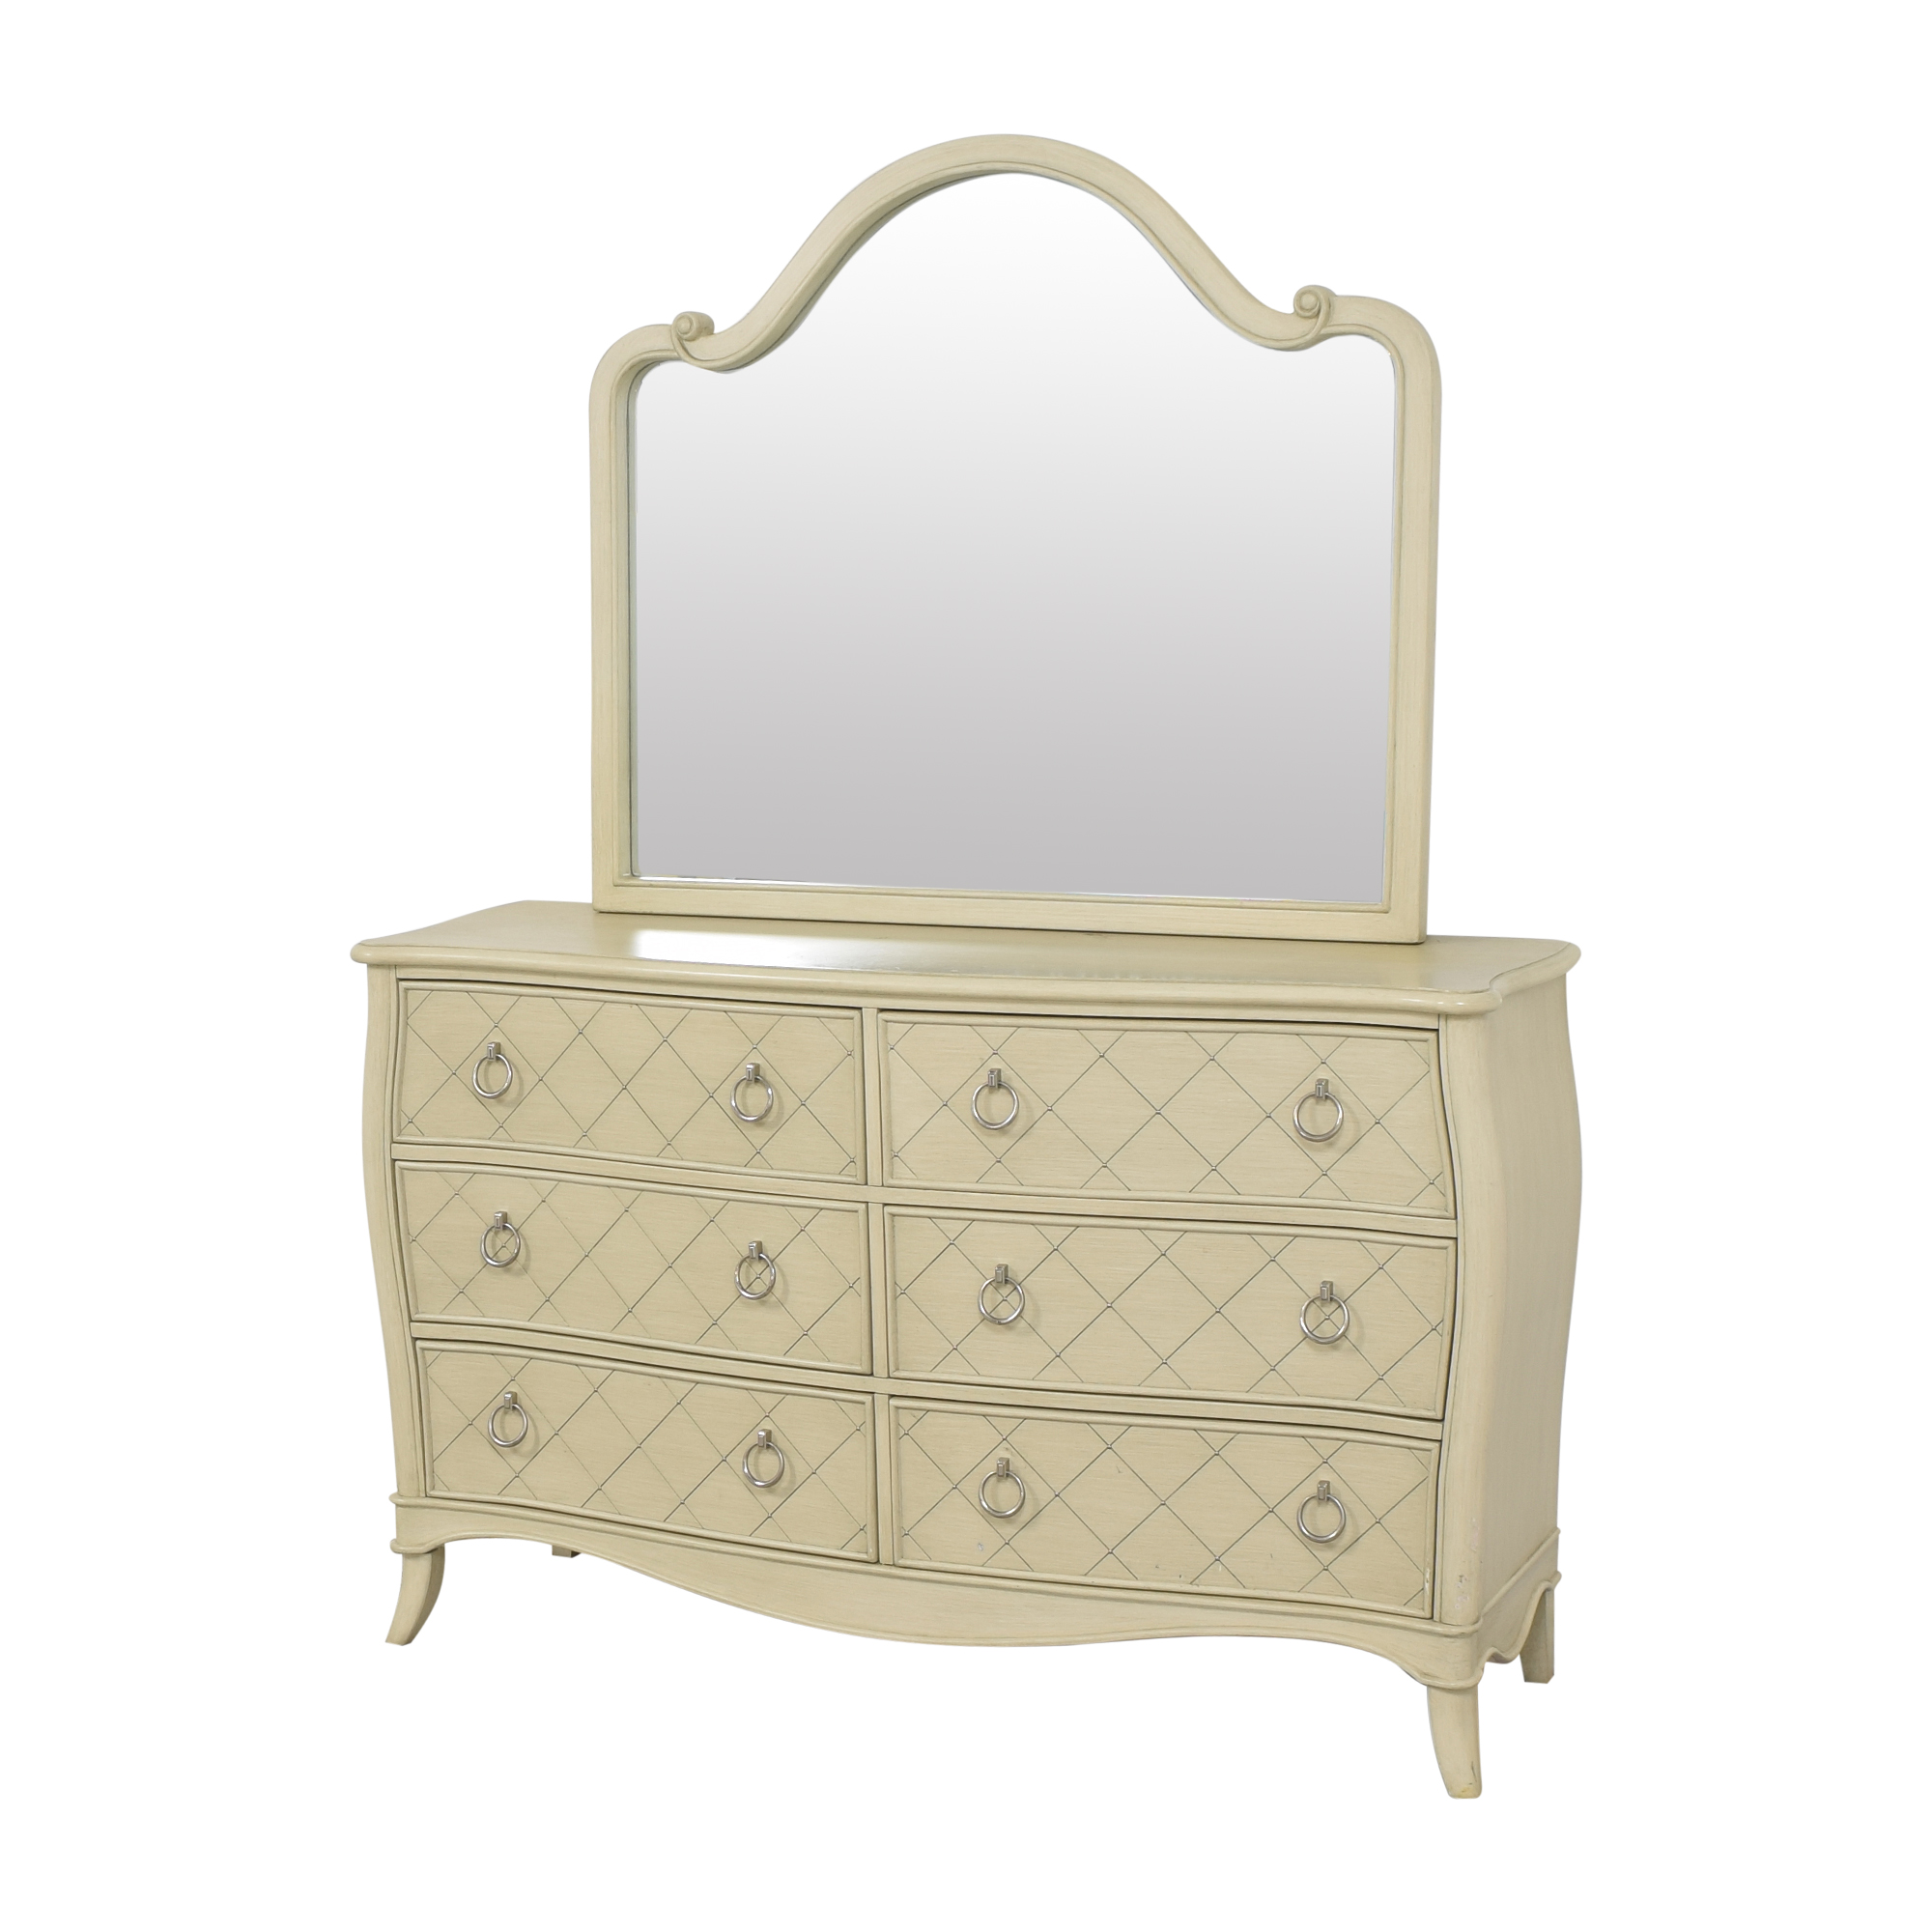 Raymour & Flanigan Raymour & Flanigan Dresser with Mirror used